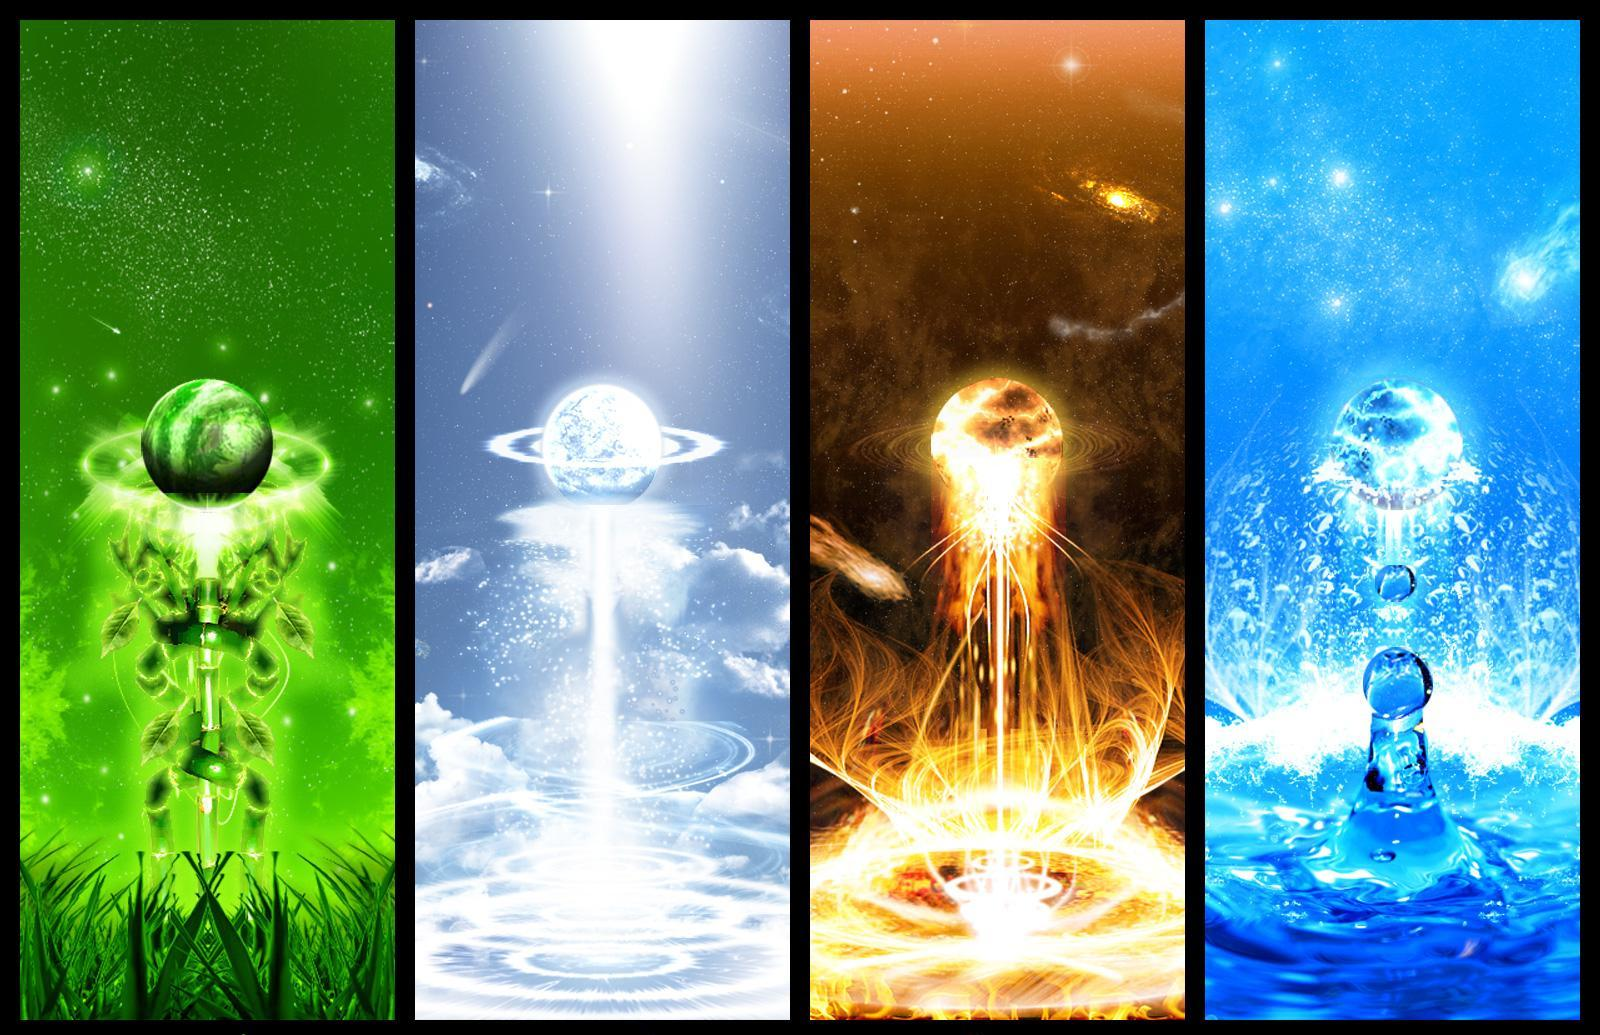 Elemental clipart fire and water Posses On Should Personality Should